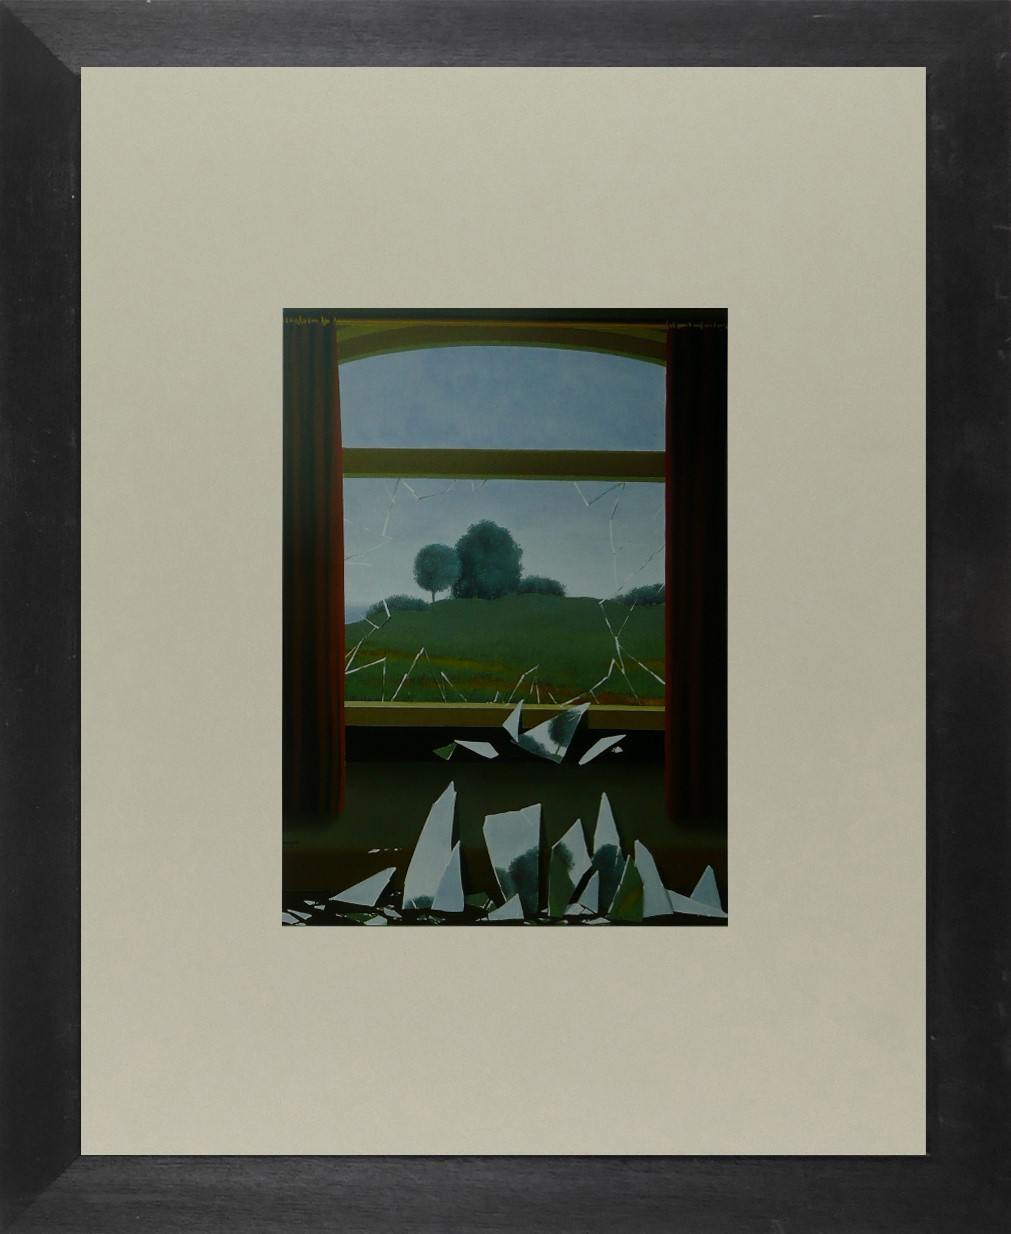 La Clef des Champs - (The key to the fields) - Magritte - Framed Picture 11 x 14